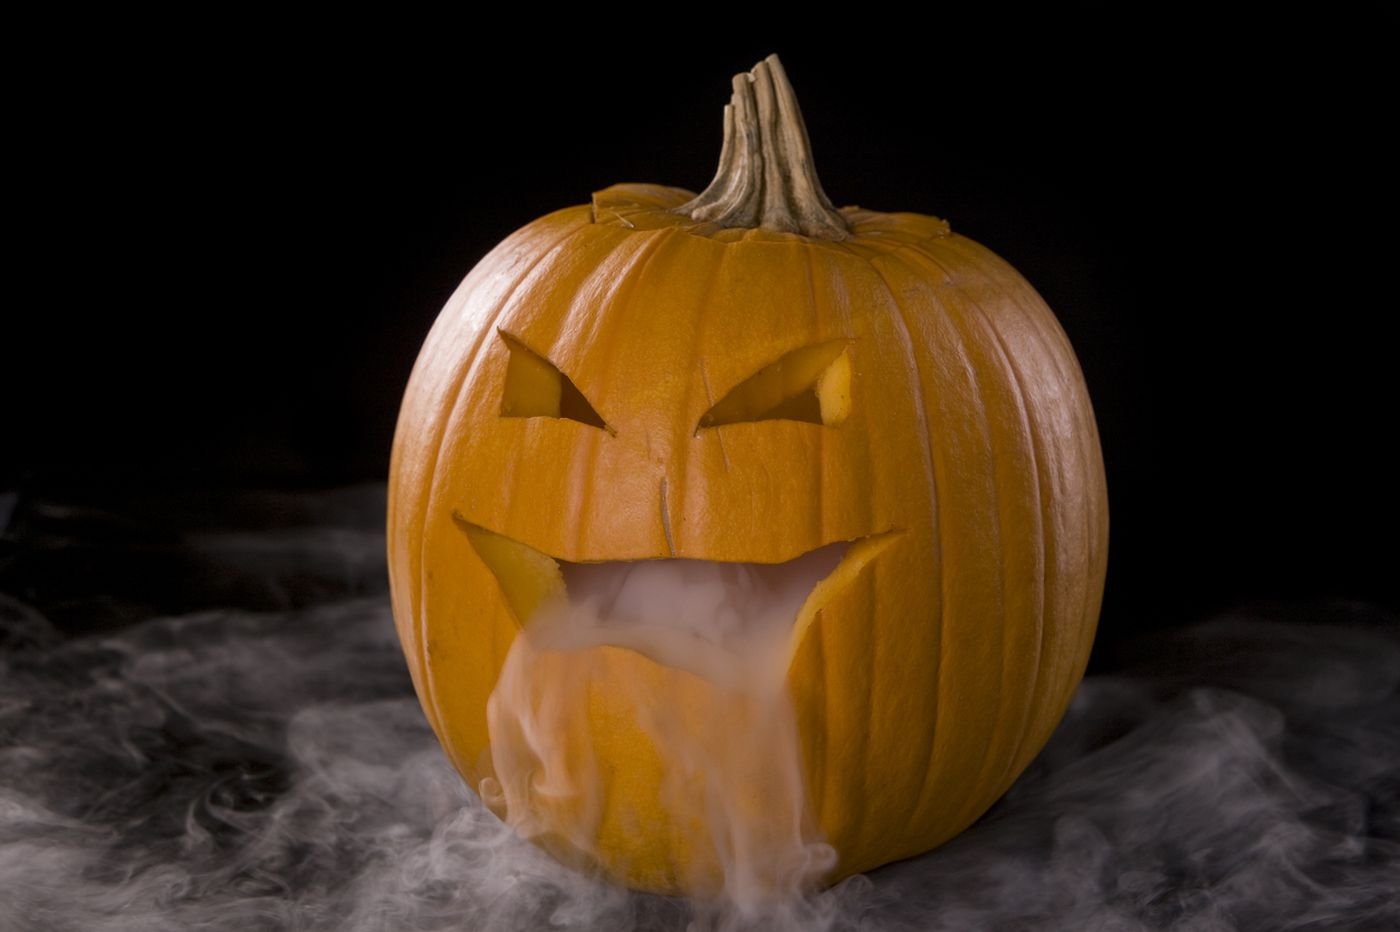 How to use dry ice safely this Halloween